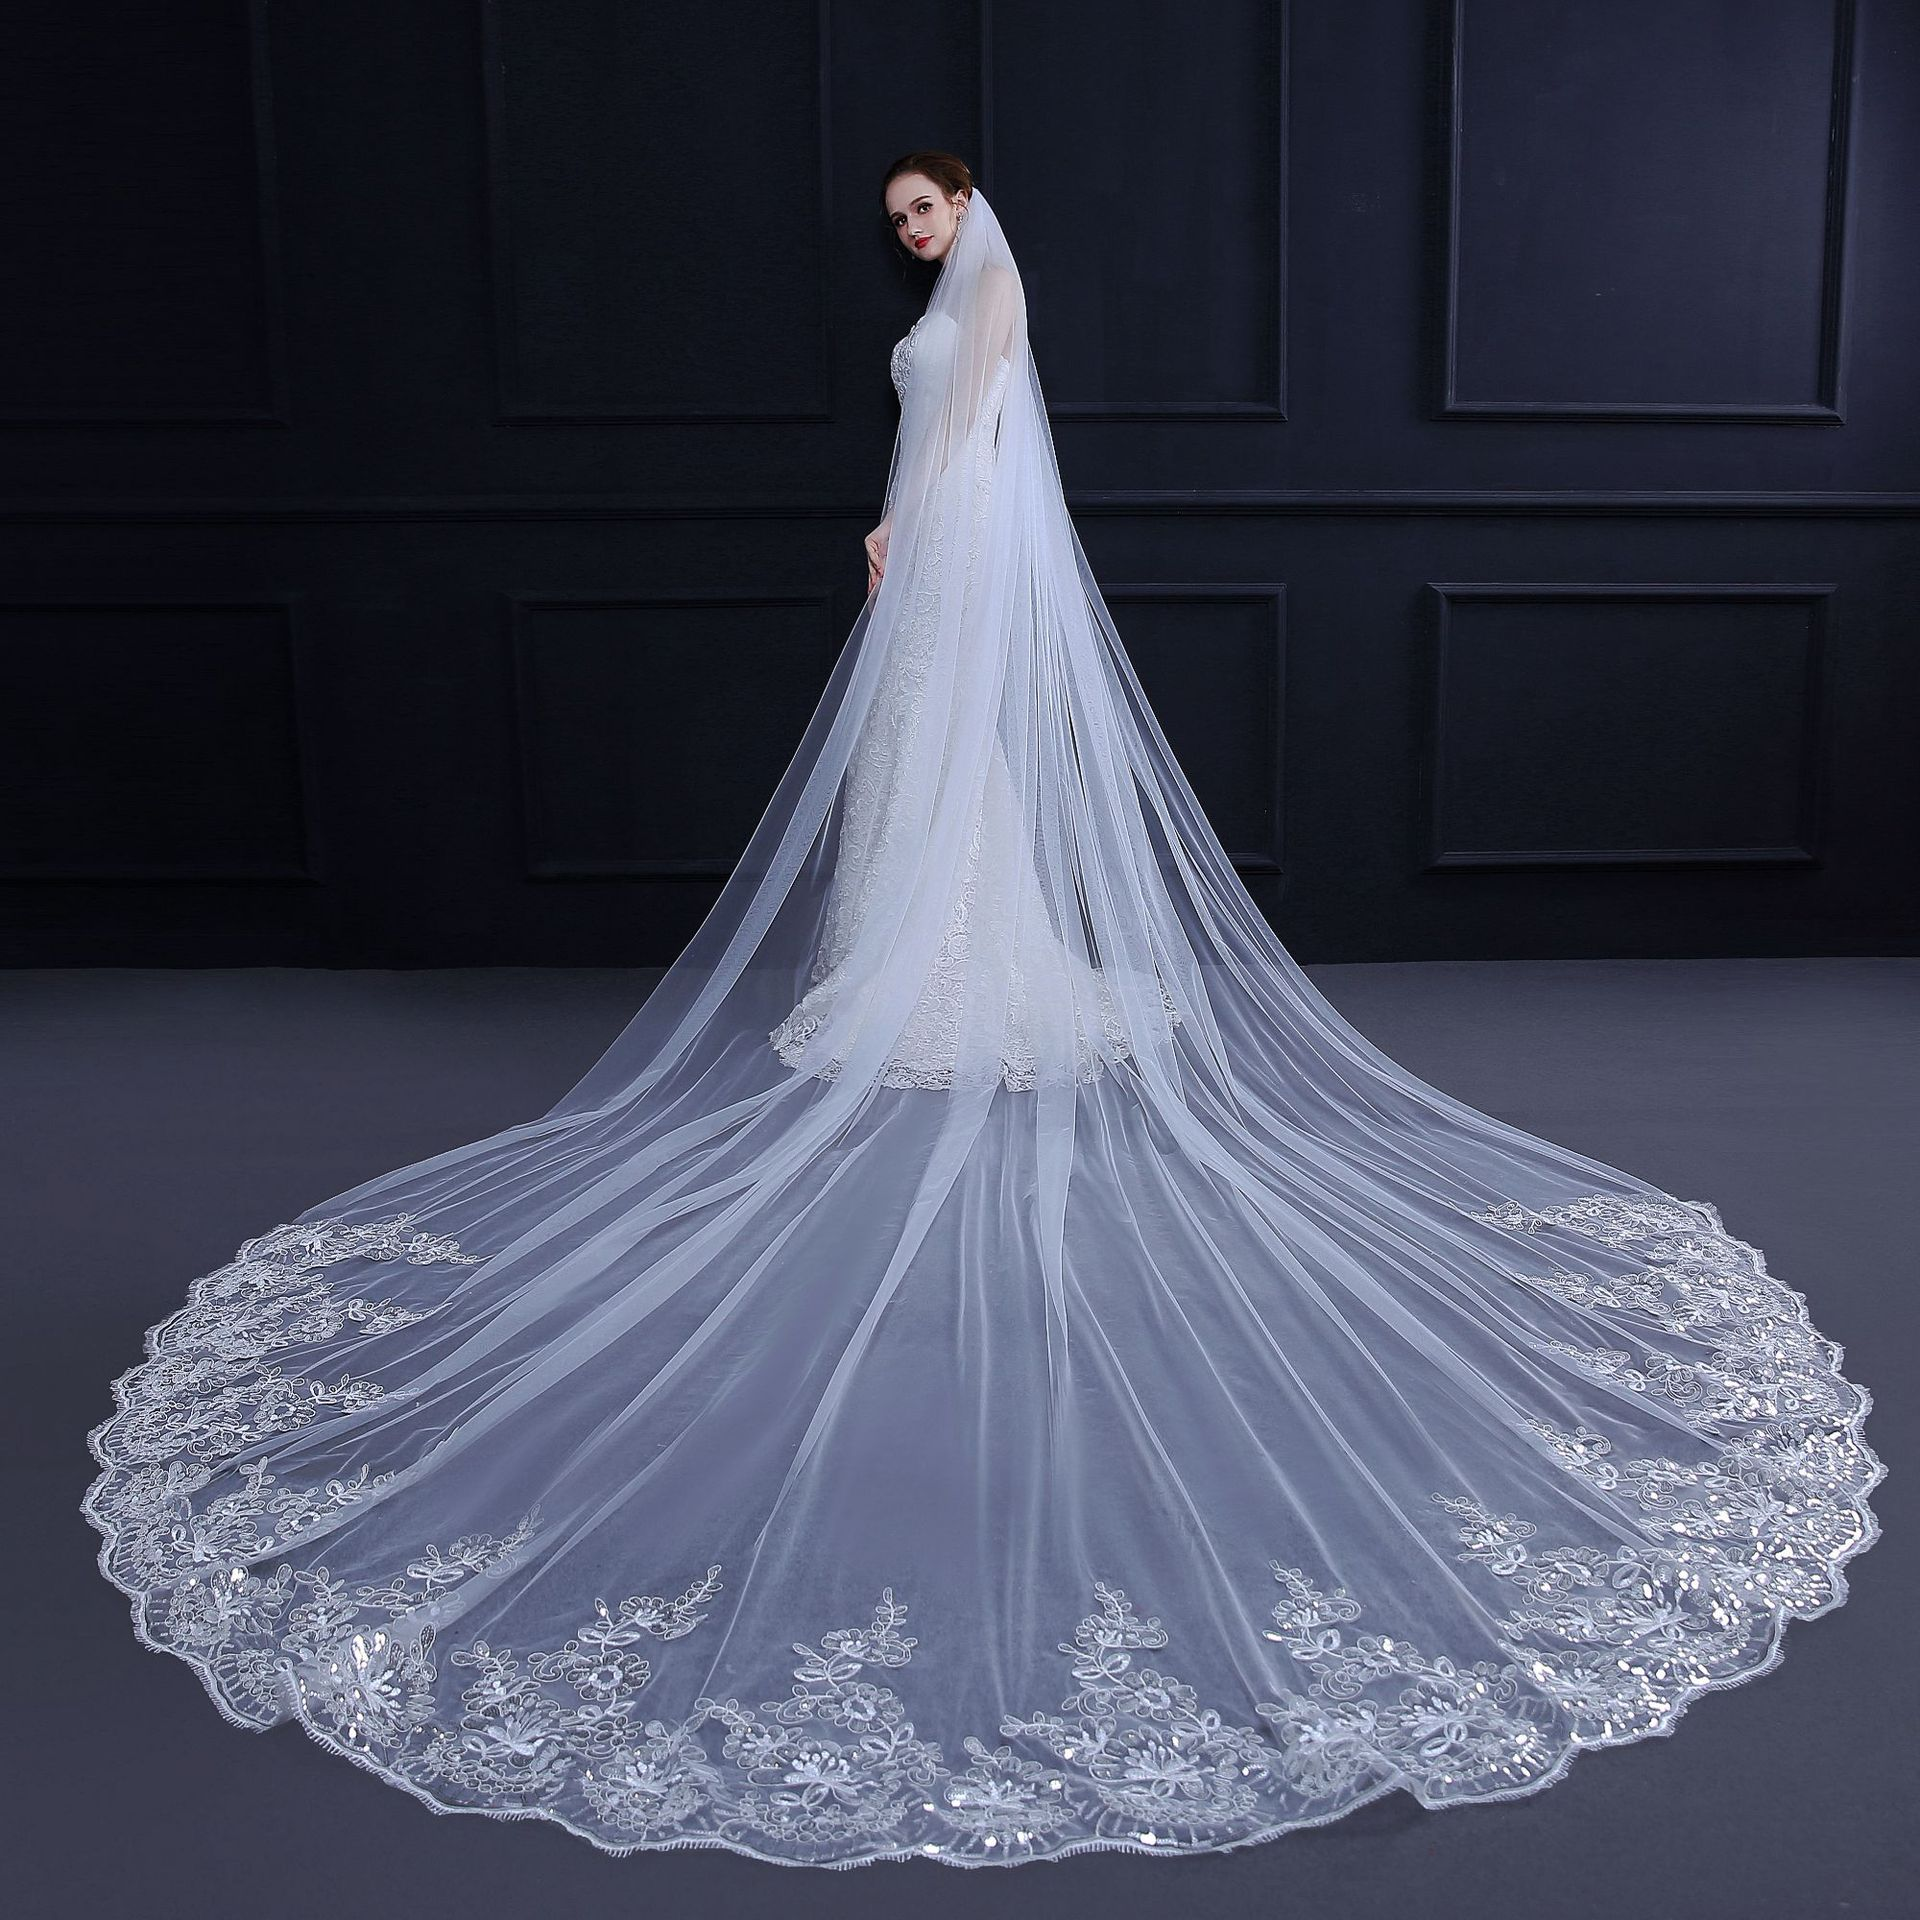 Cheap 4 Meters Long Bridal Veils Sequins Lace Rounded Cut Edge Wedding Veil One Tiers Bling Sequin